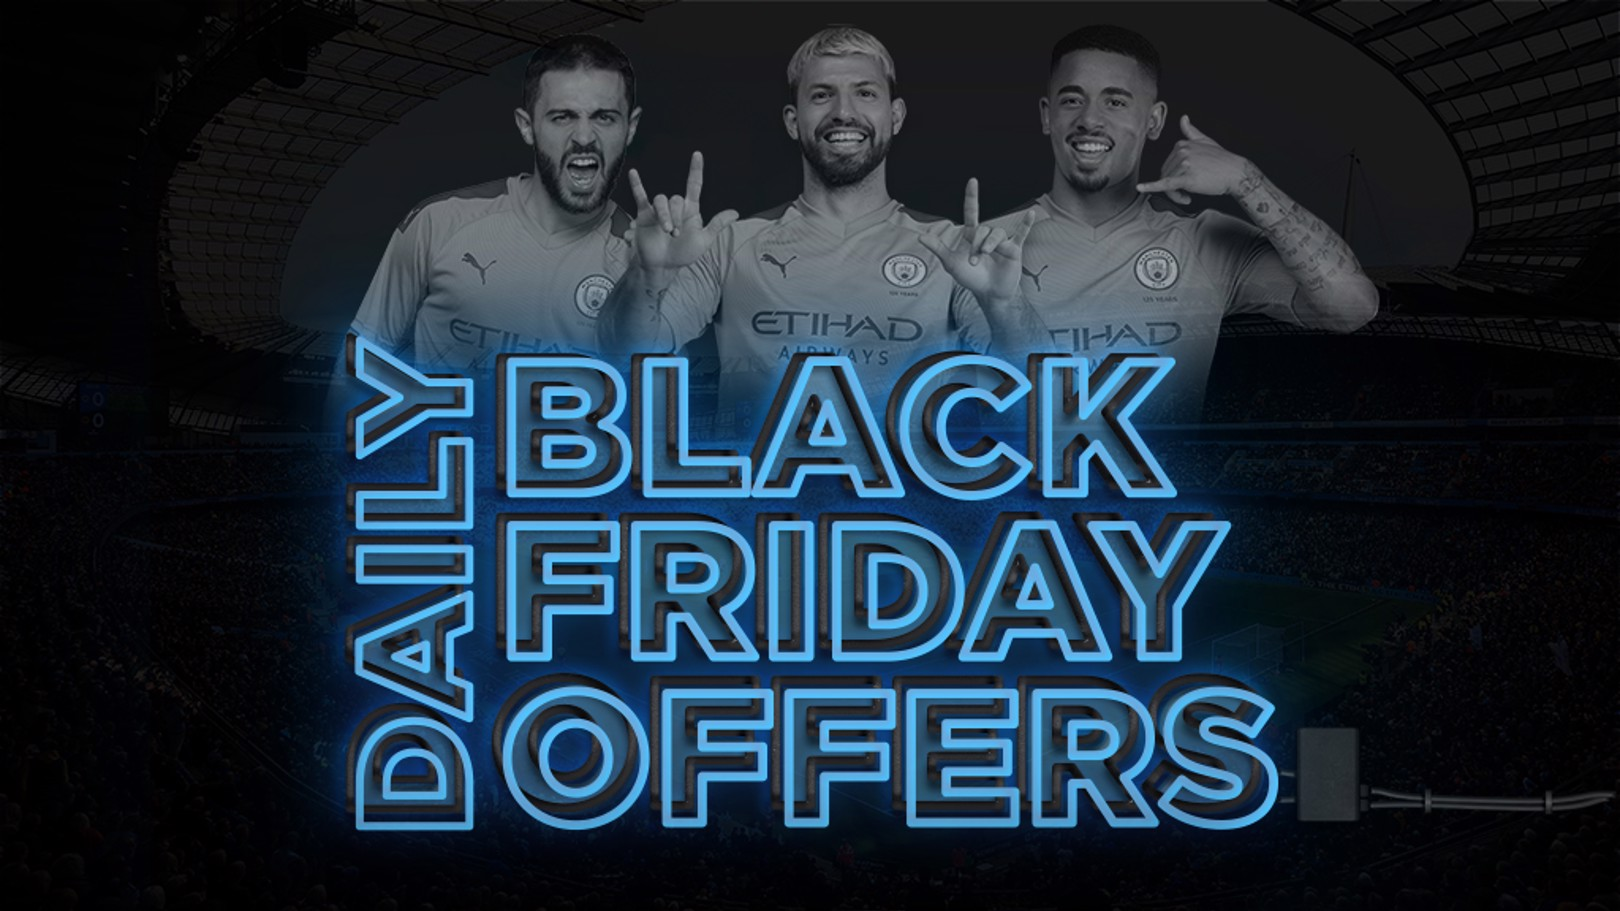 Black Friday daily offers are here!